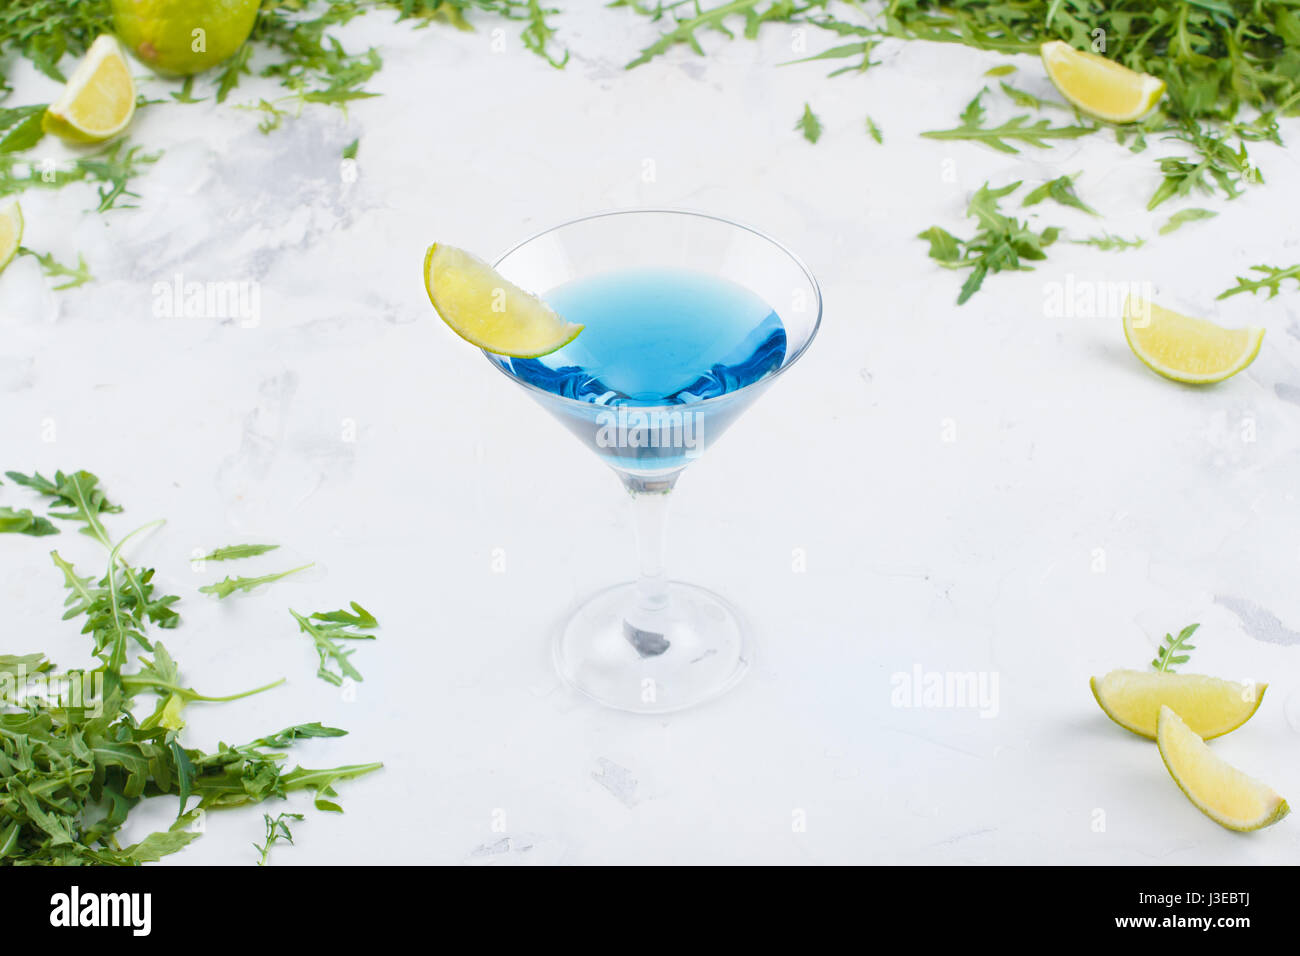 A refreshing blue cocktail with lime in a martini glass on a white background. Cocktail on a background of greenery - Stock Image